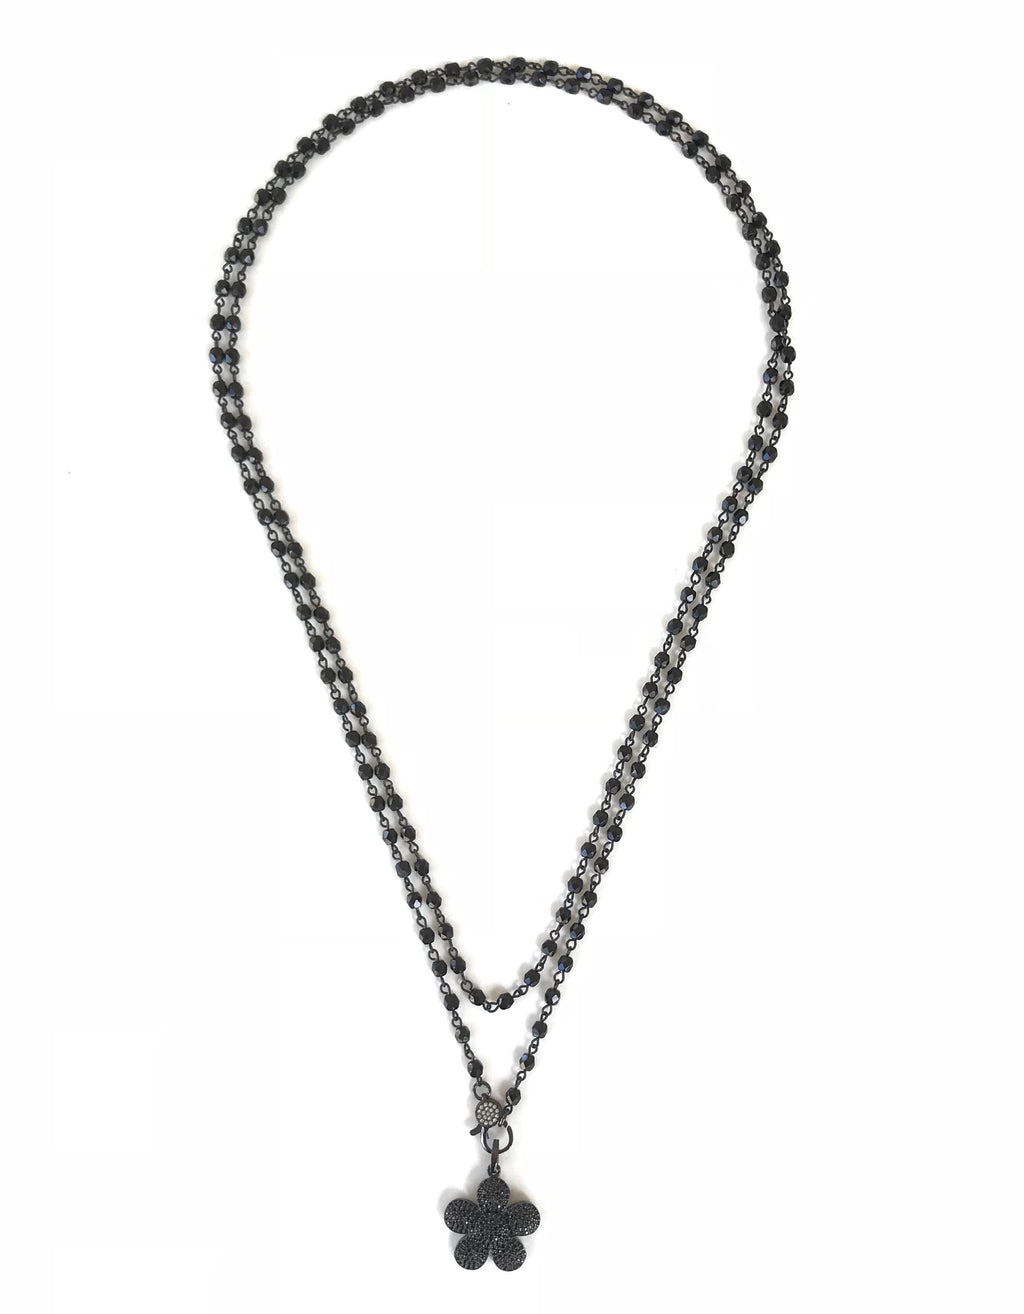 Jet Black Beads and Gunmetal Flower Pendant Necklace